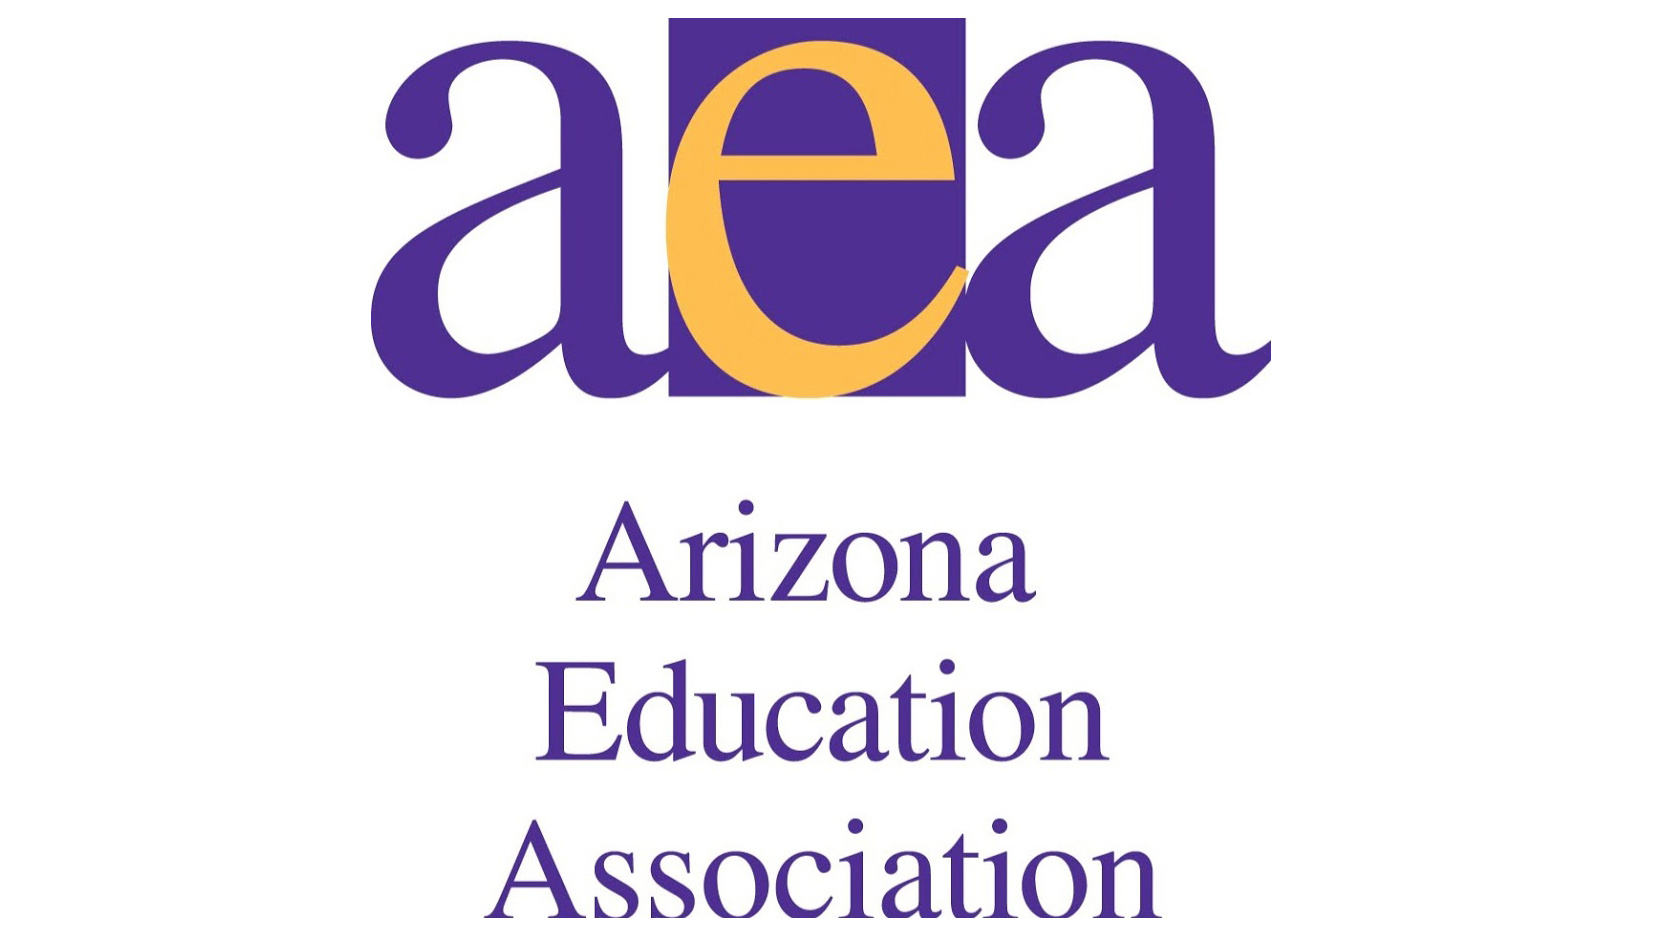 arizona education association logo